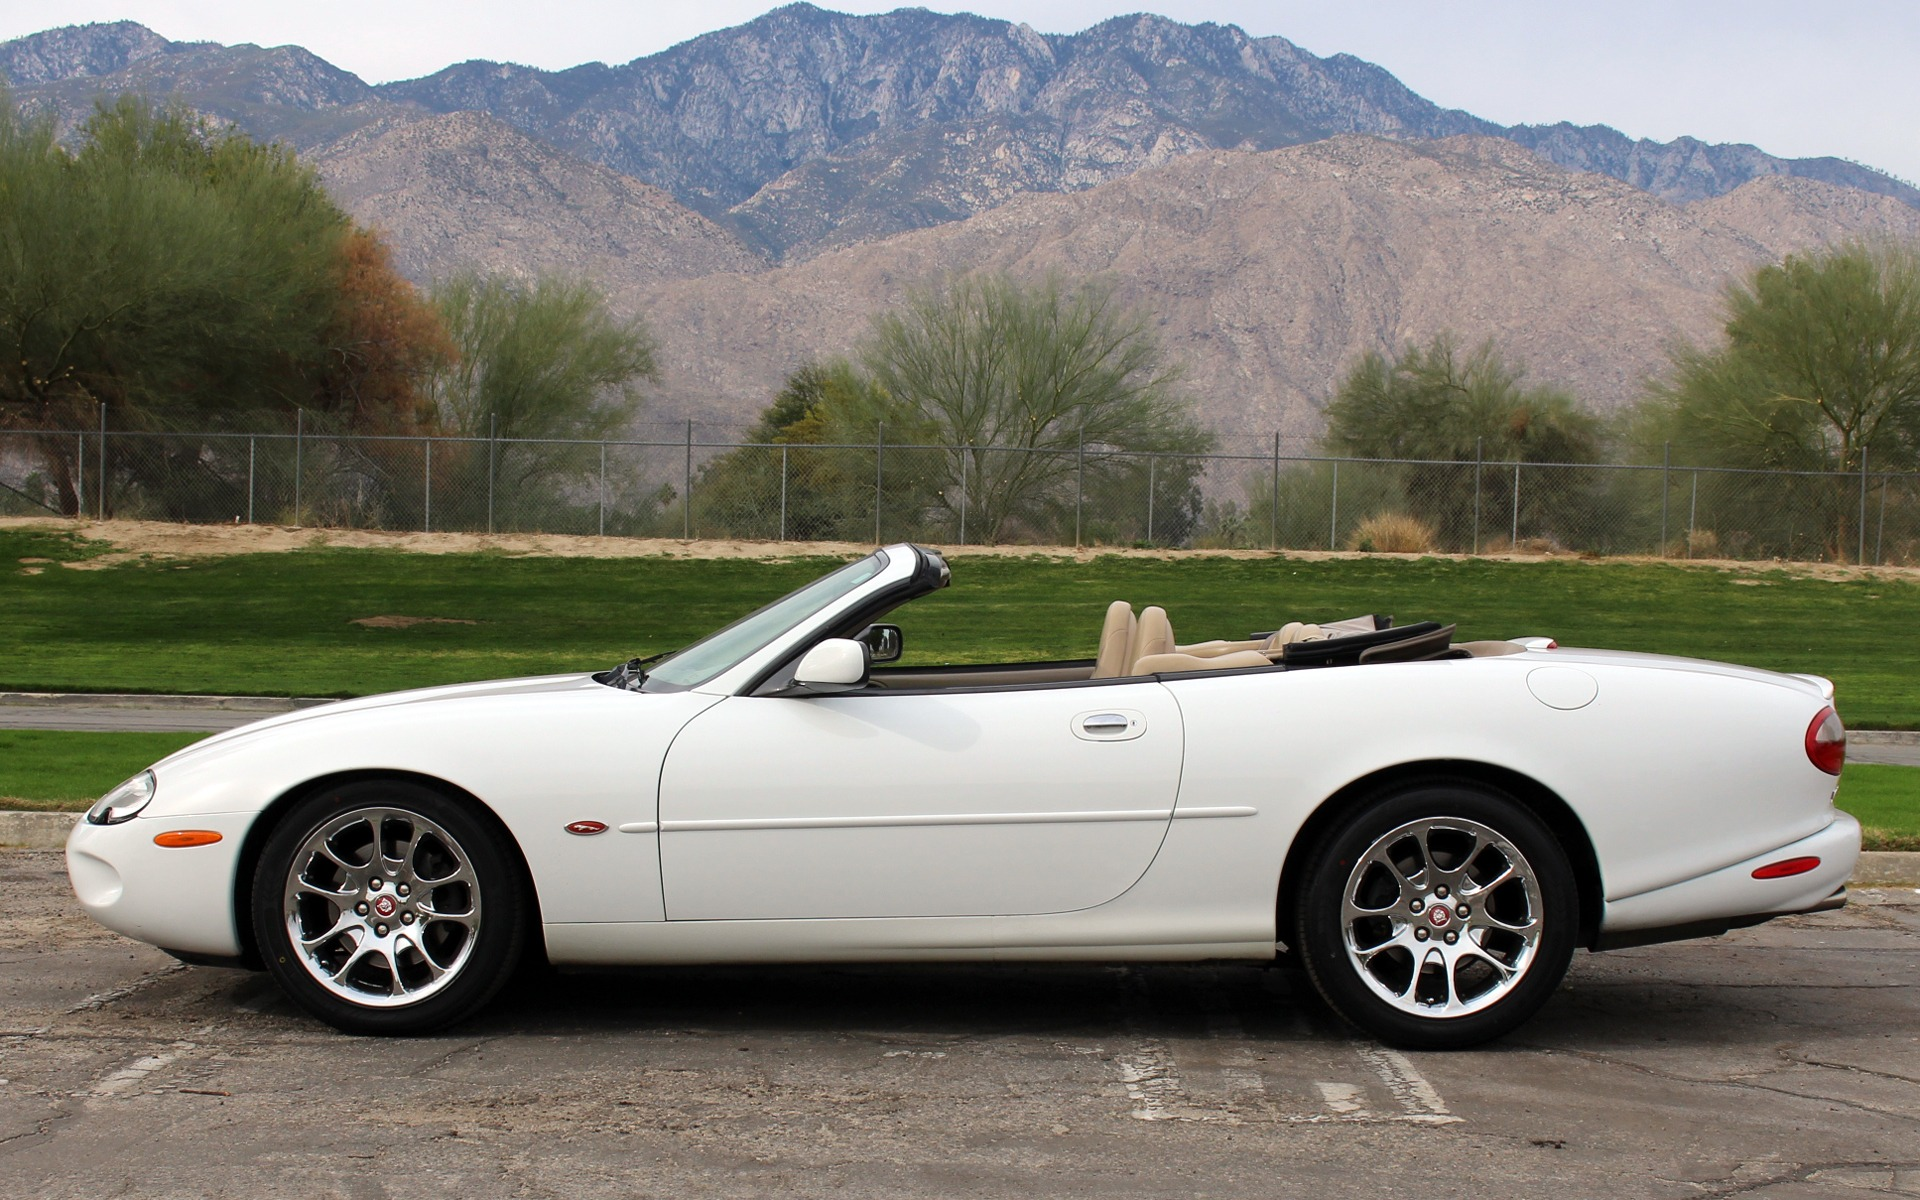 2000 jaguar xkr stock jo243 for sale near palm springs ca ca jaguar dealer. Black Bedroom Furniture Sets. Home Design Ideas